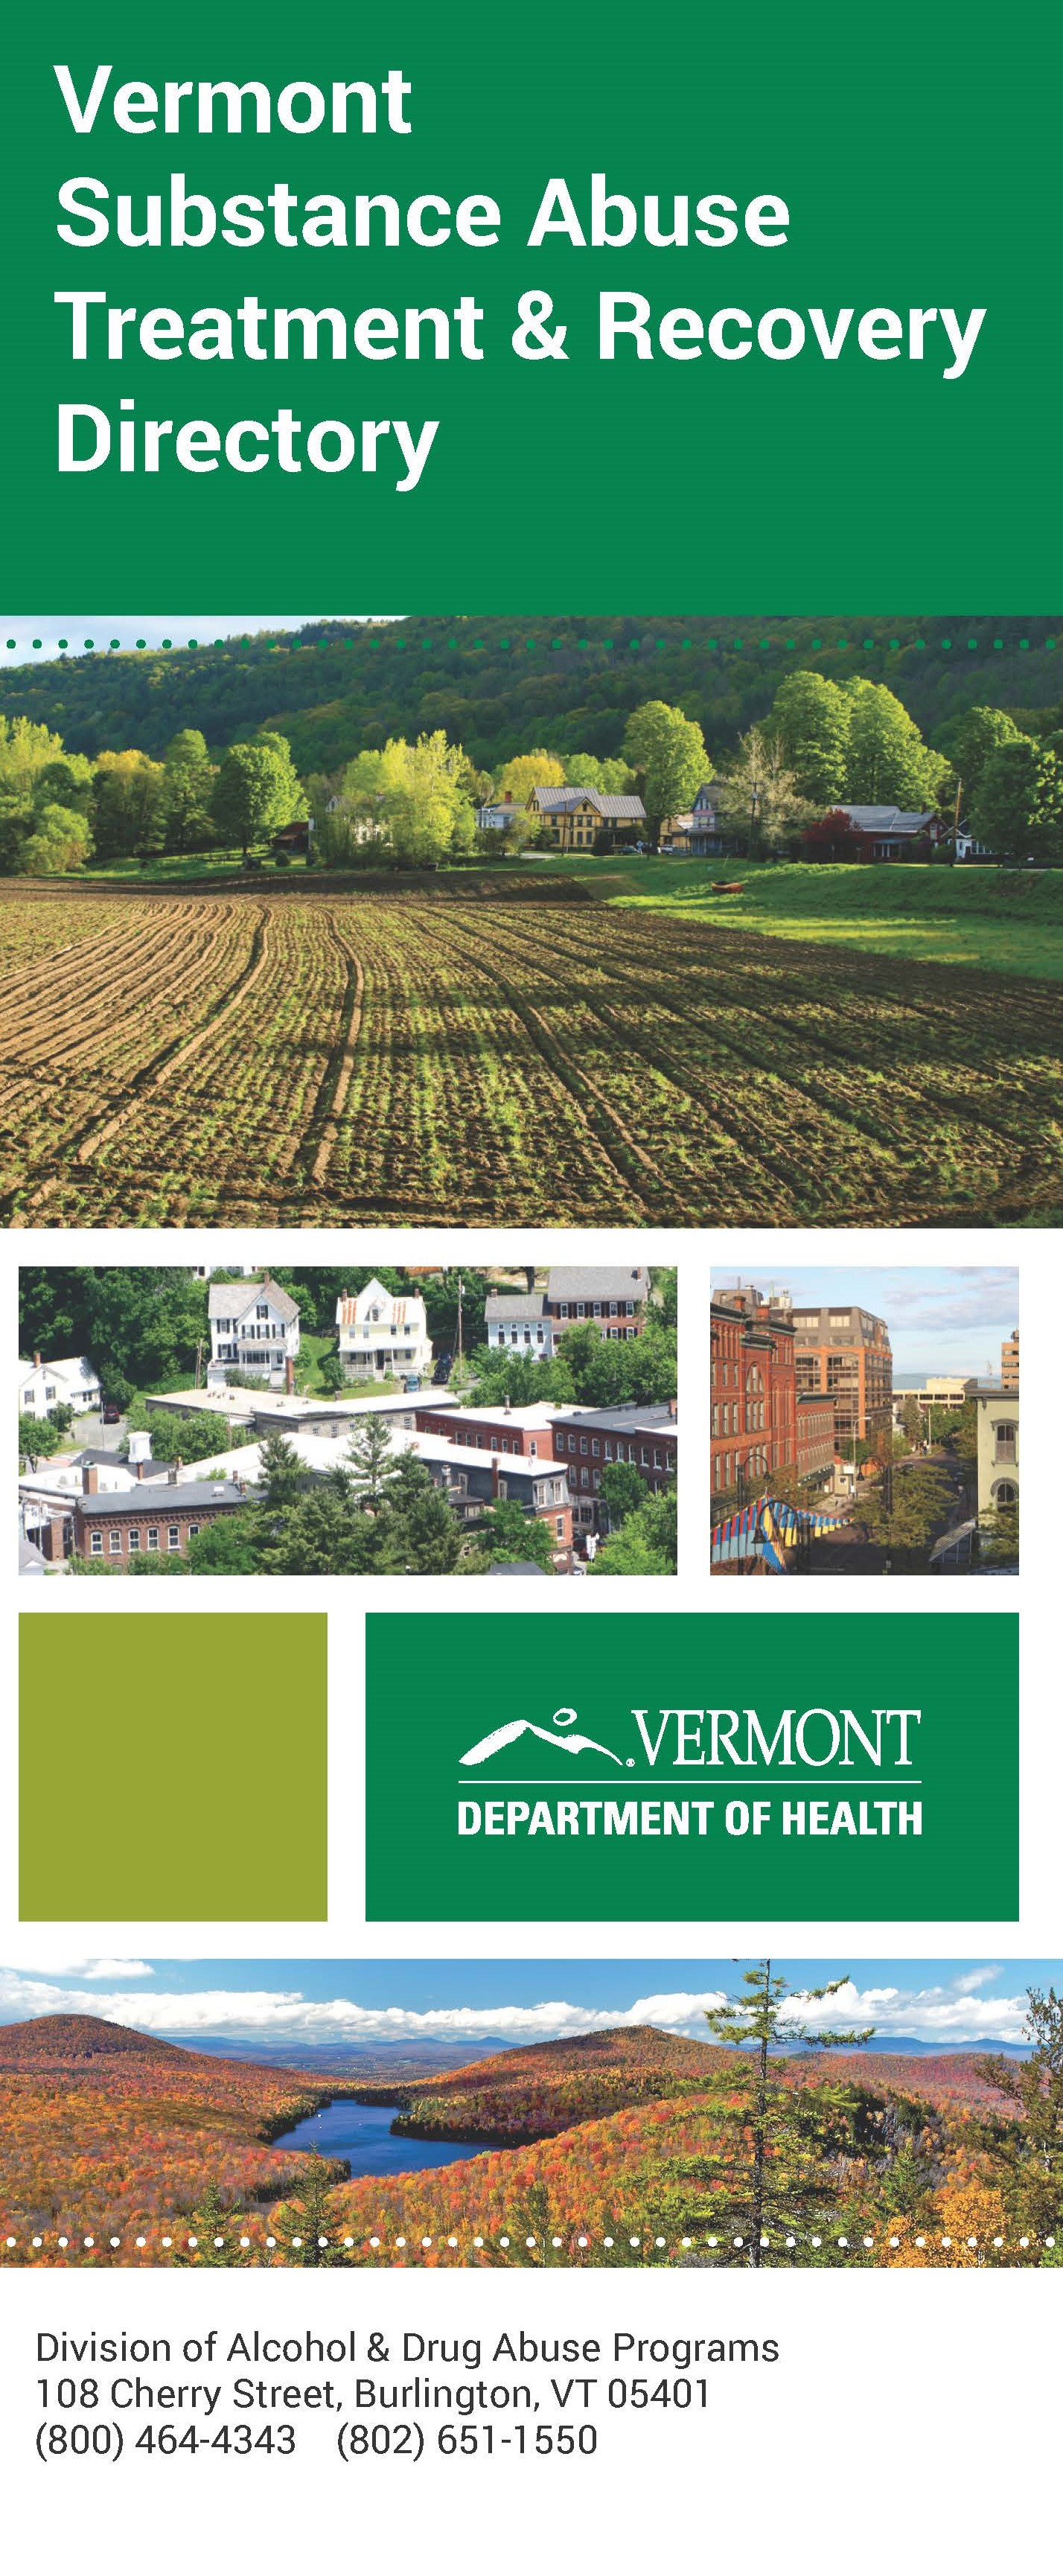 Vermont Substance Abuse Treatment & Recovery Directory